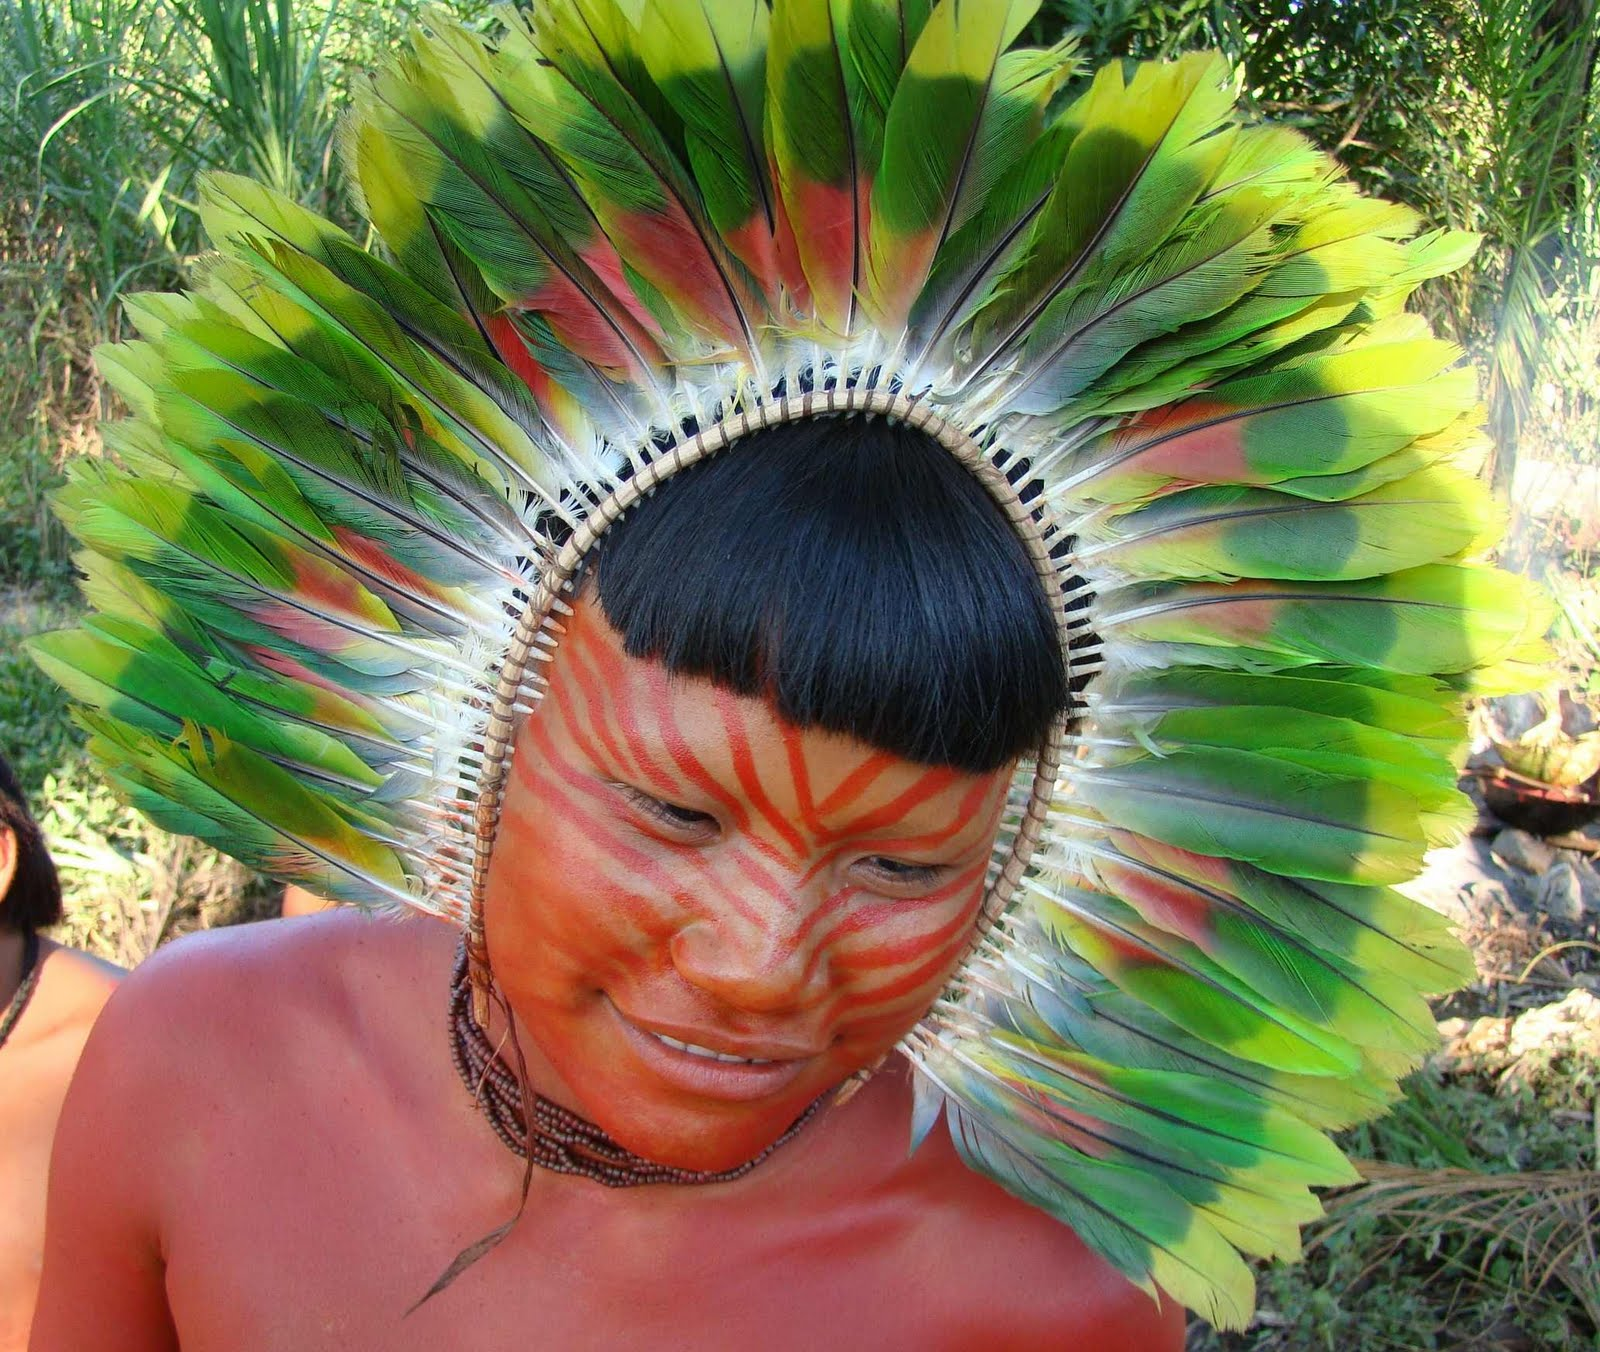 Wildlife, History And Adventure In The Amazon: June 2011